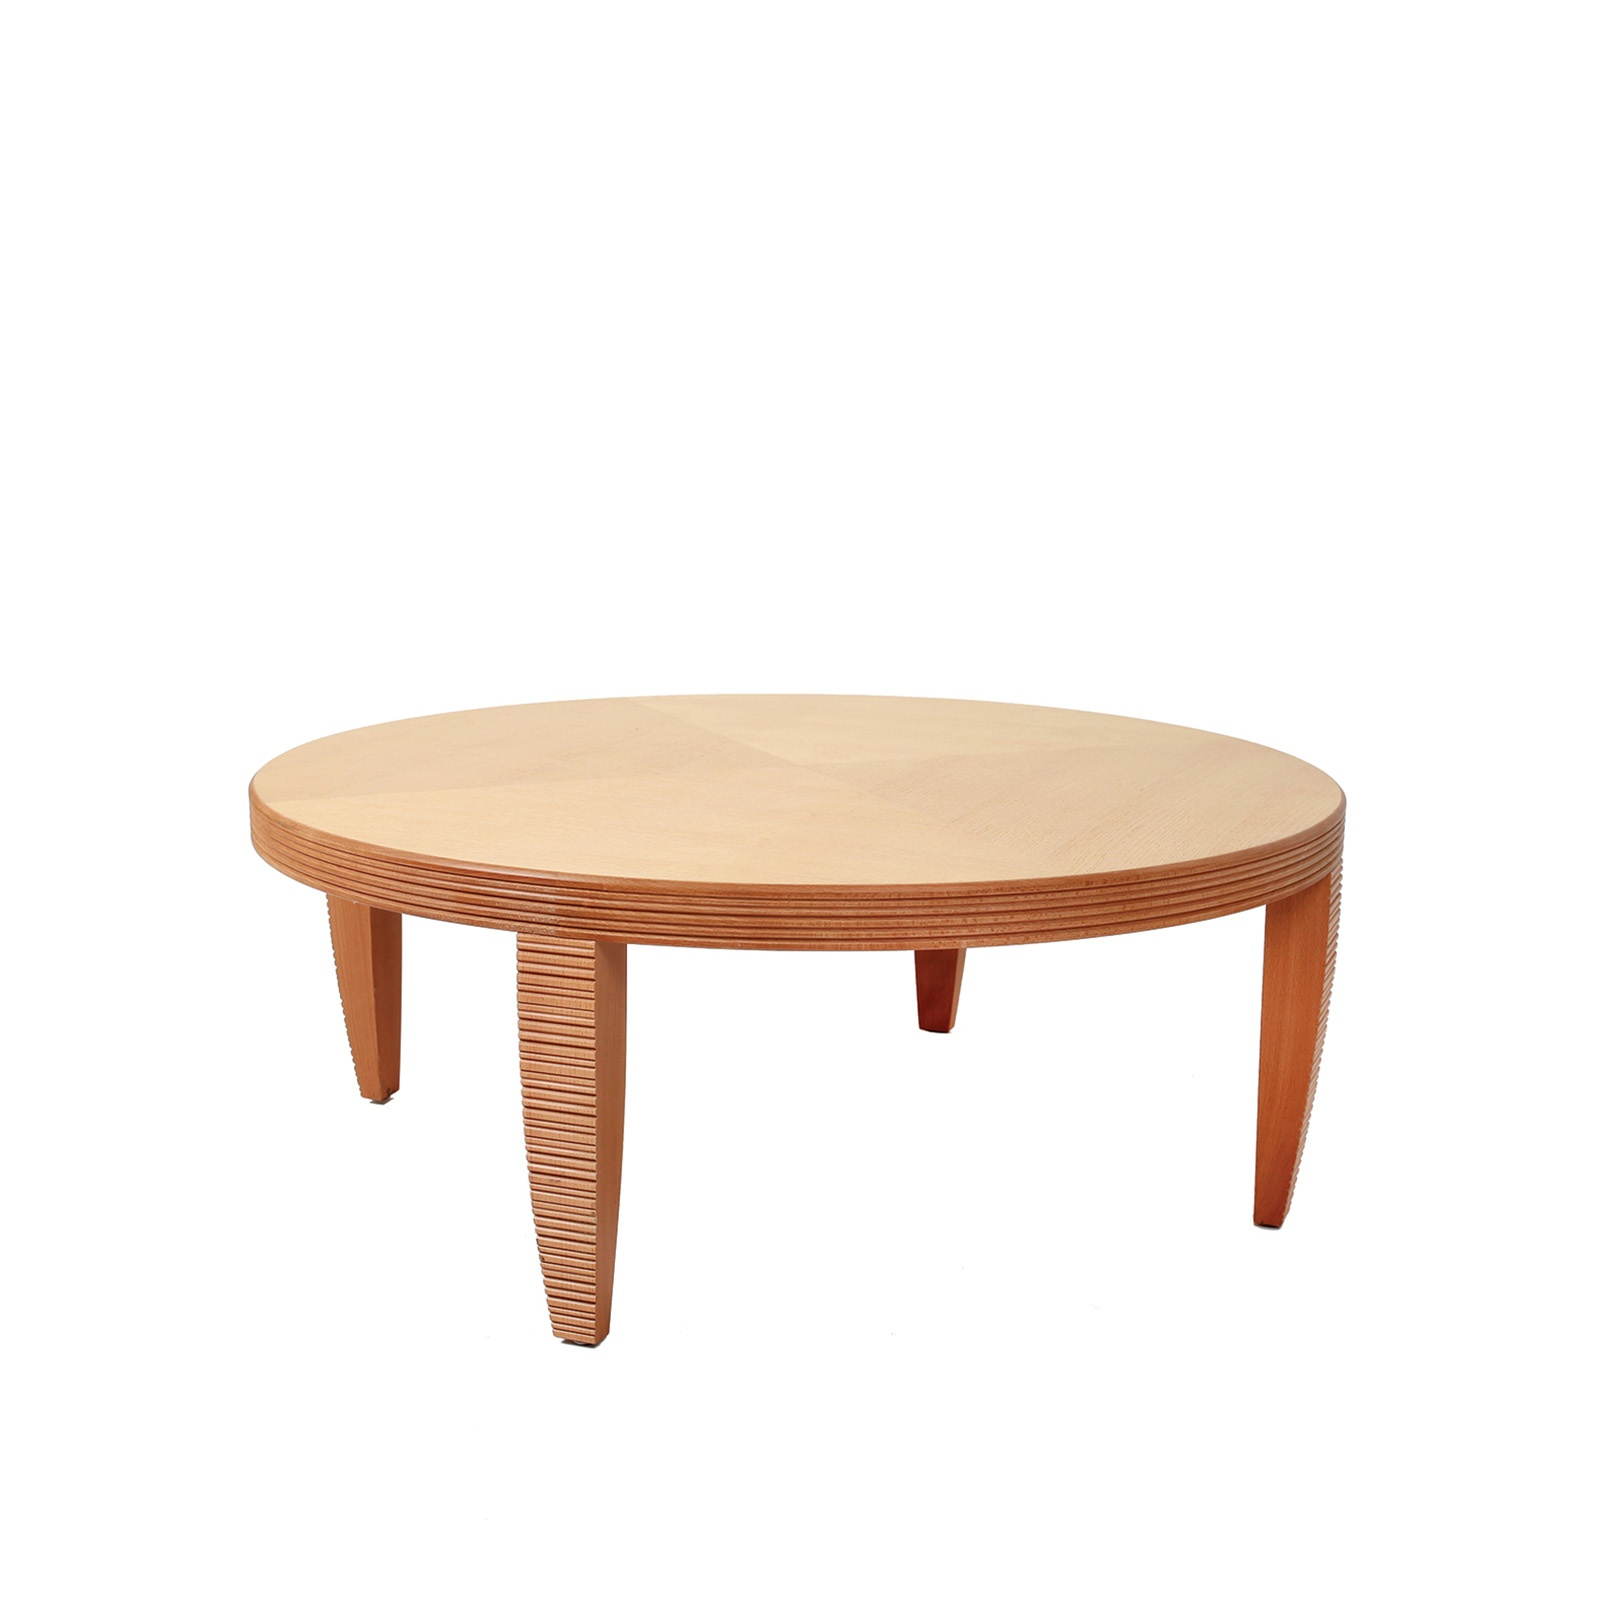 изображение Стол Groovy Coffee Table Round в Decoconcept